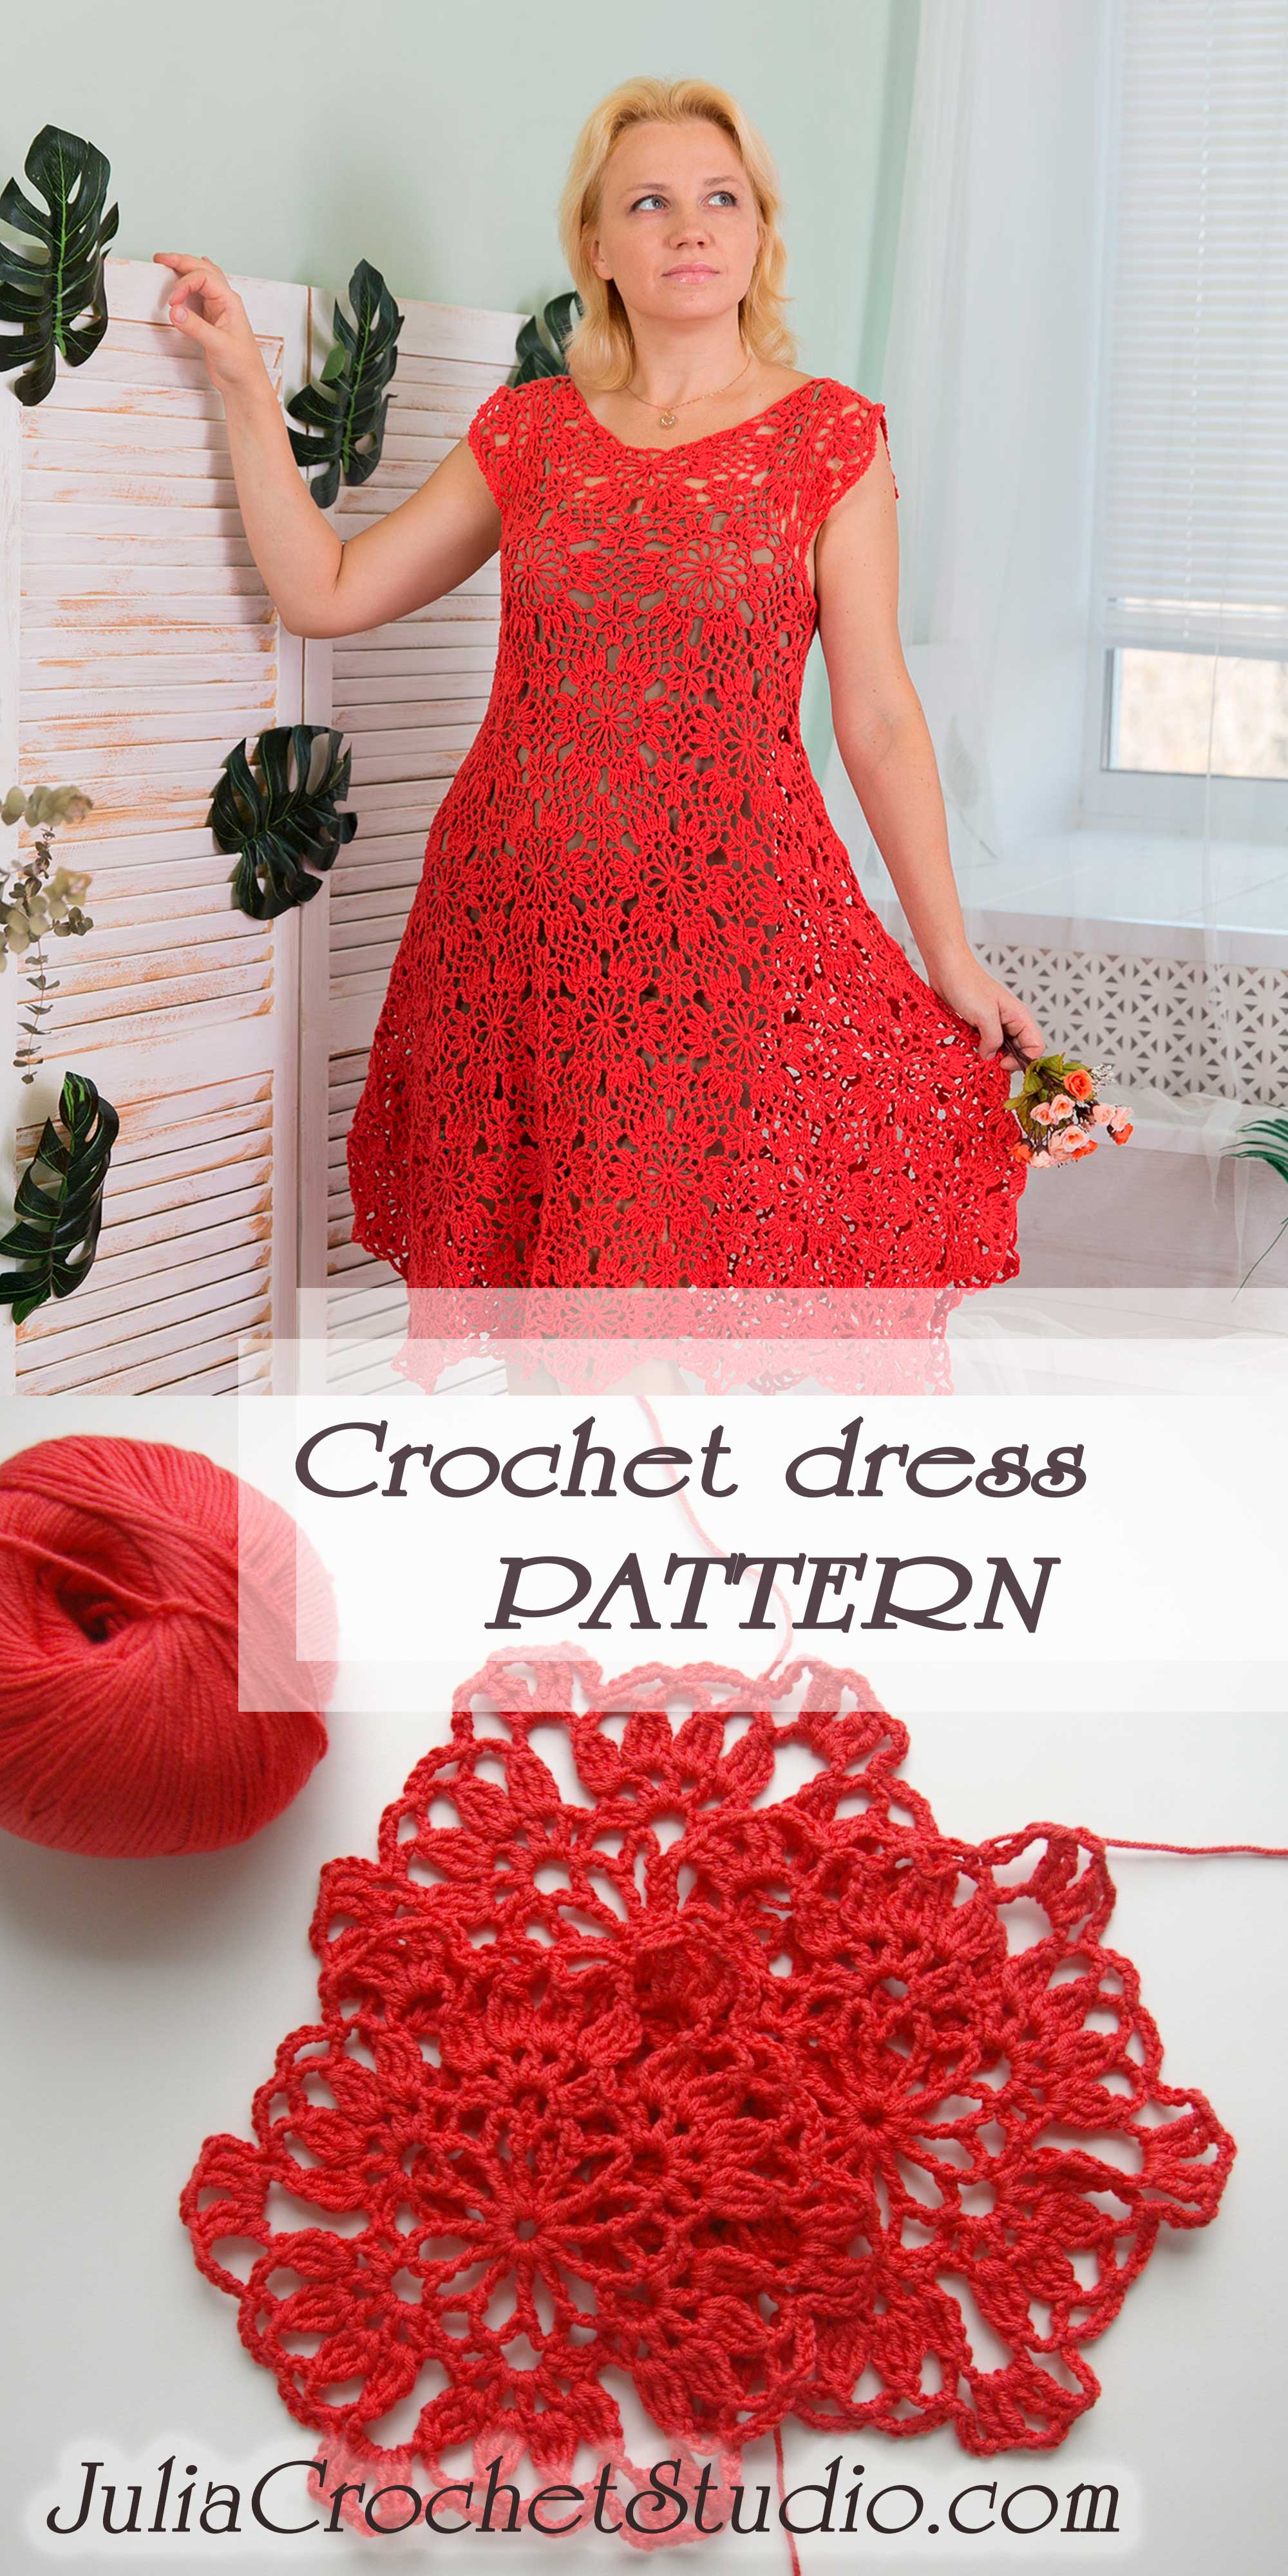 Crochet dress with round motifs